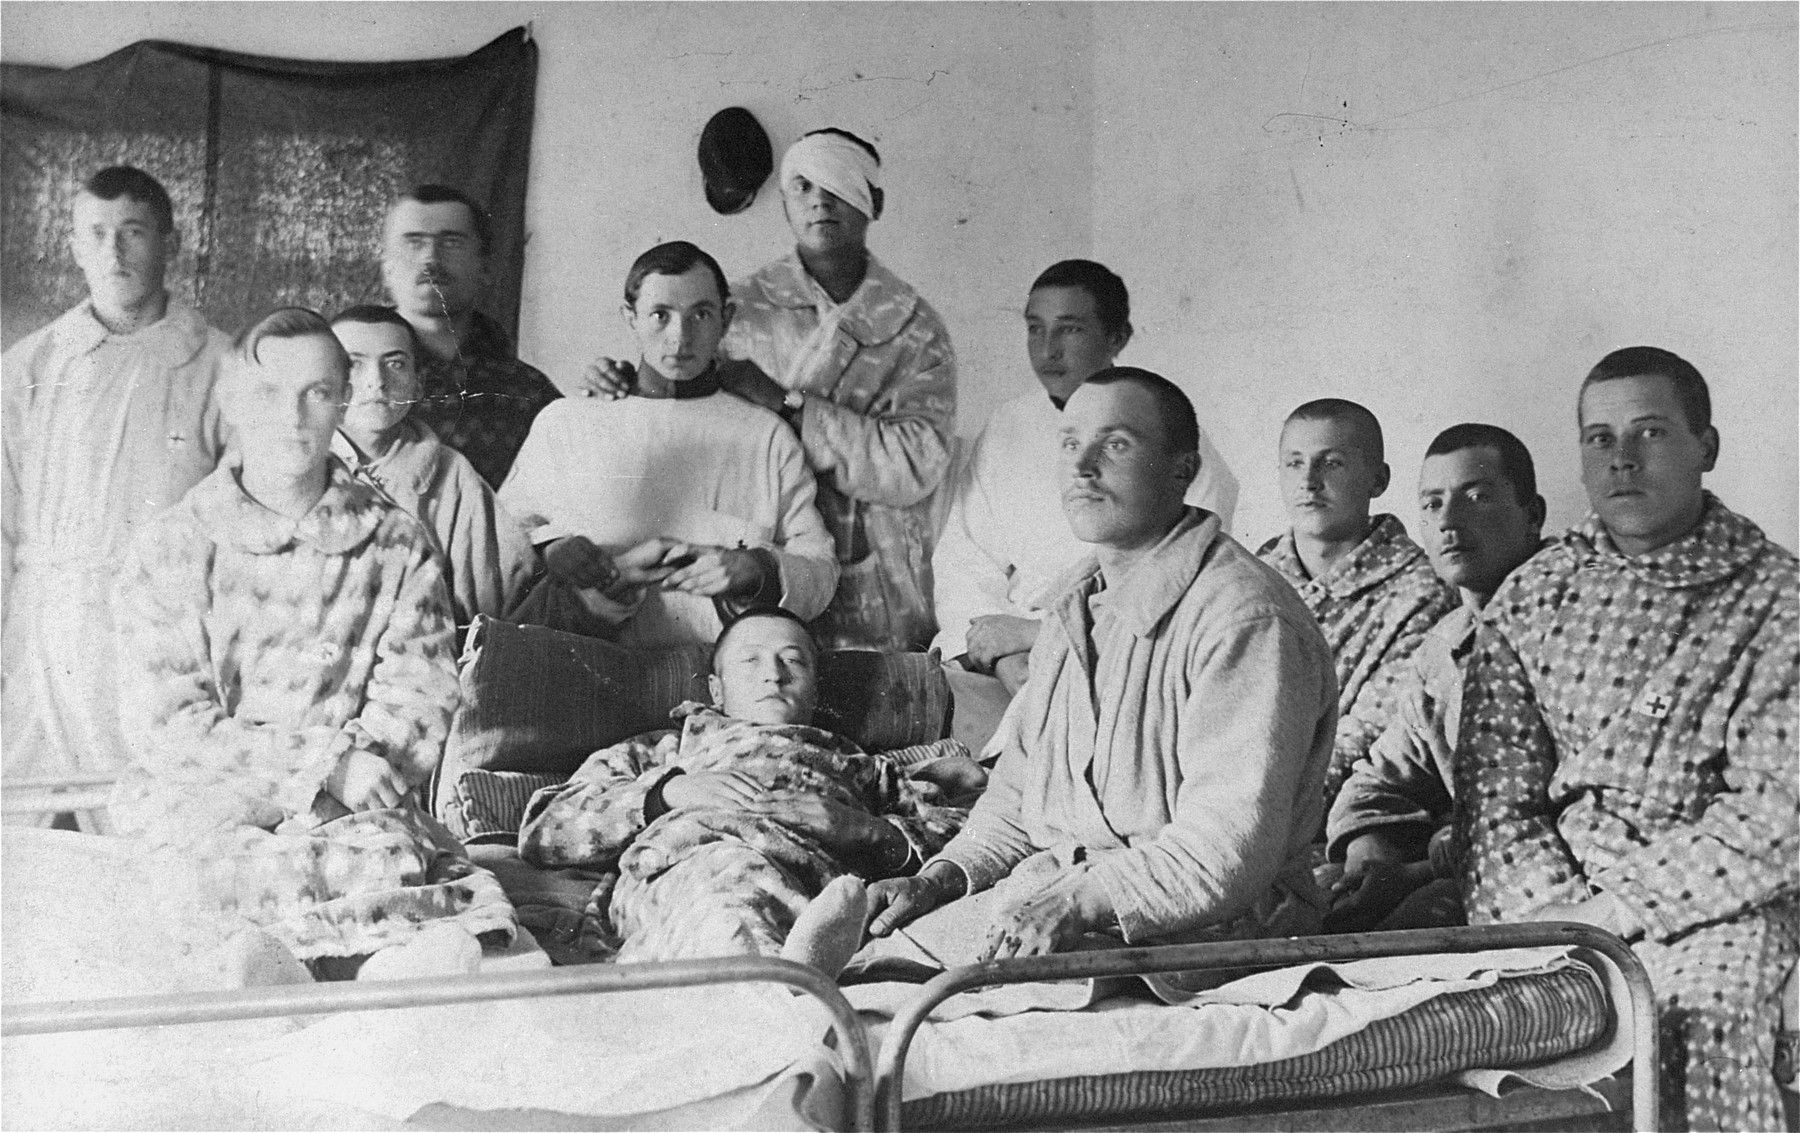 Group portrait of convalescing soldiers in a hospital [possibly Jewish veterans of the First World War in Minsk].